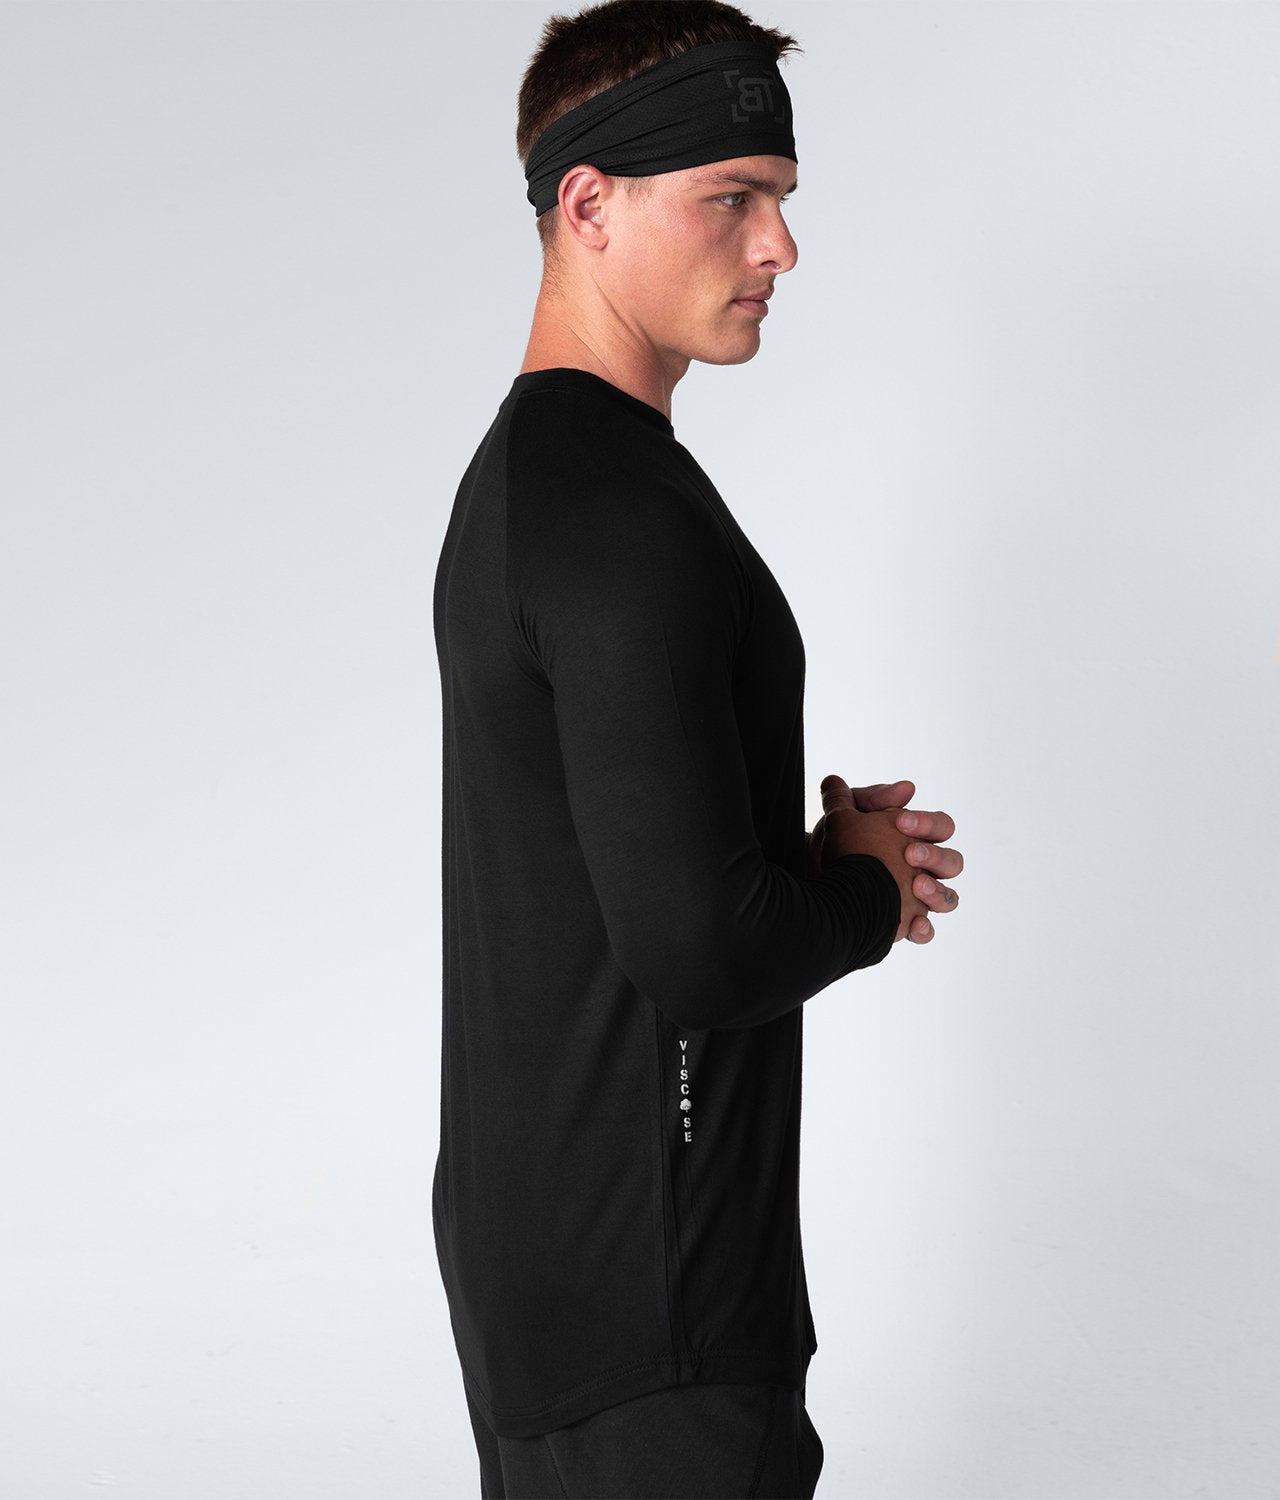 Born Tough United Kingdom Core Fit Extended Scallop Hem Black Long Sleeve Gym Workout Shirt For Men